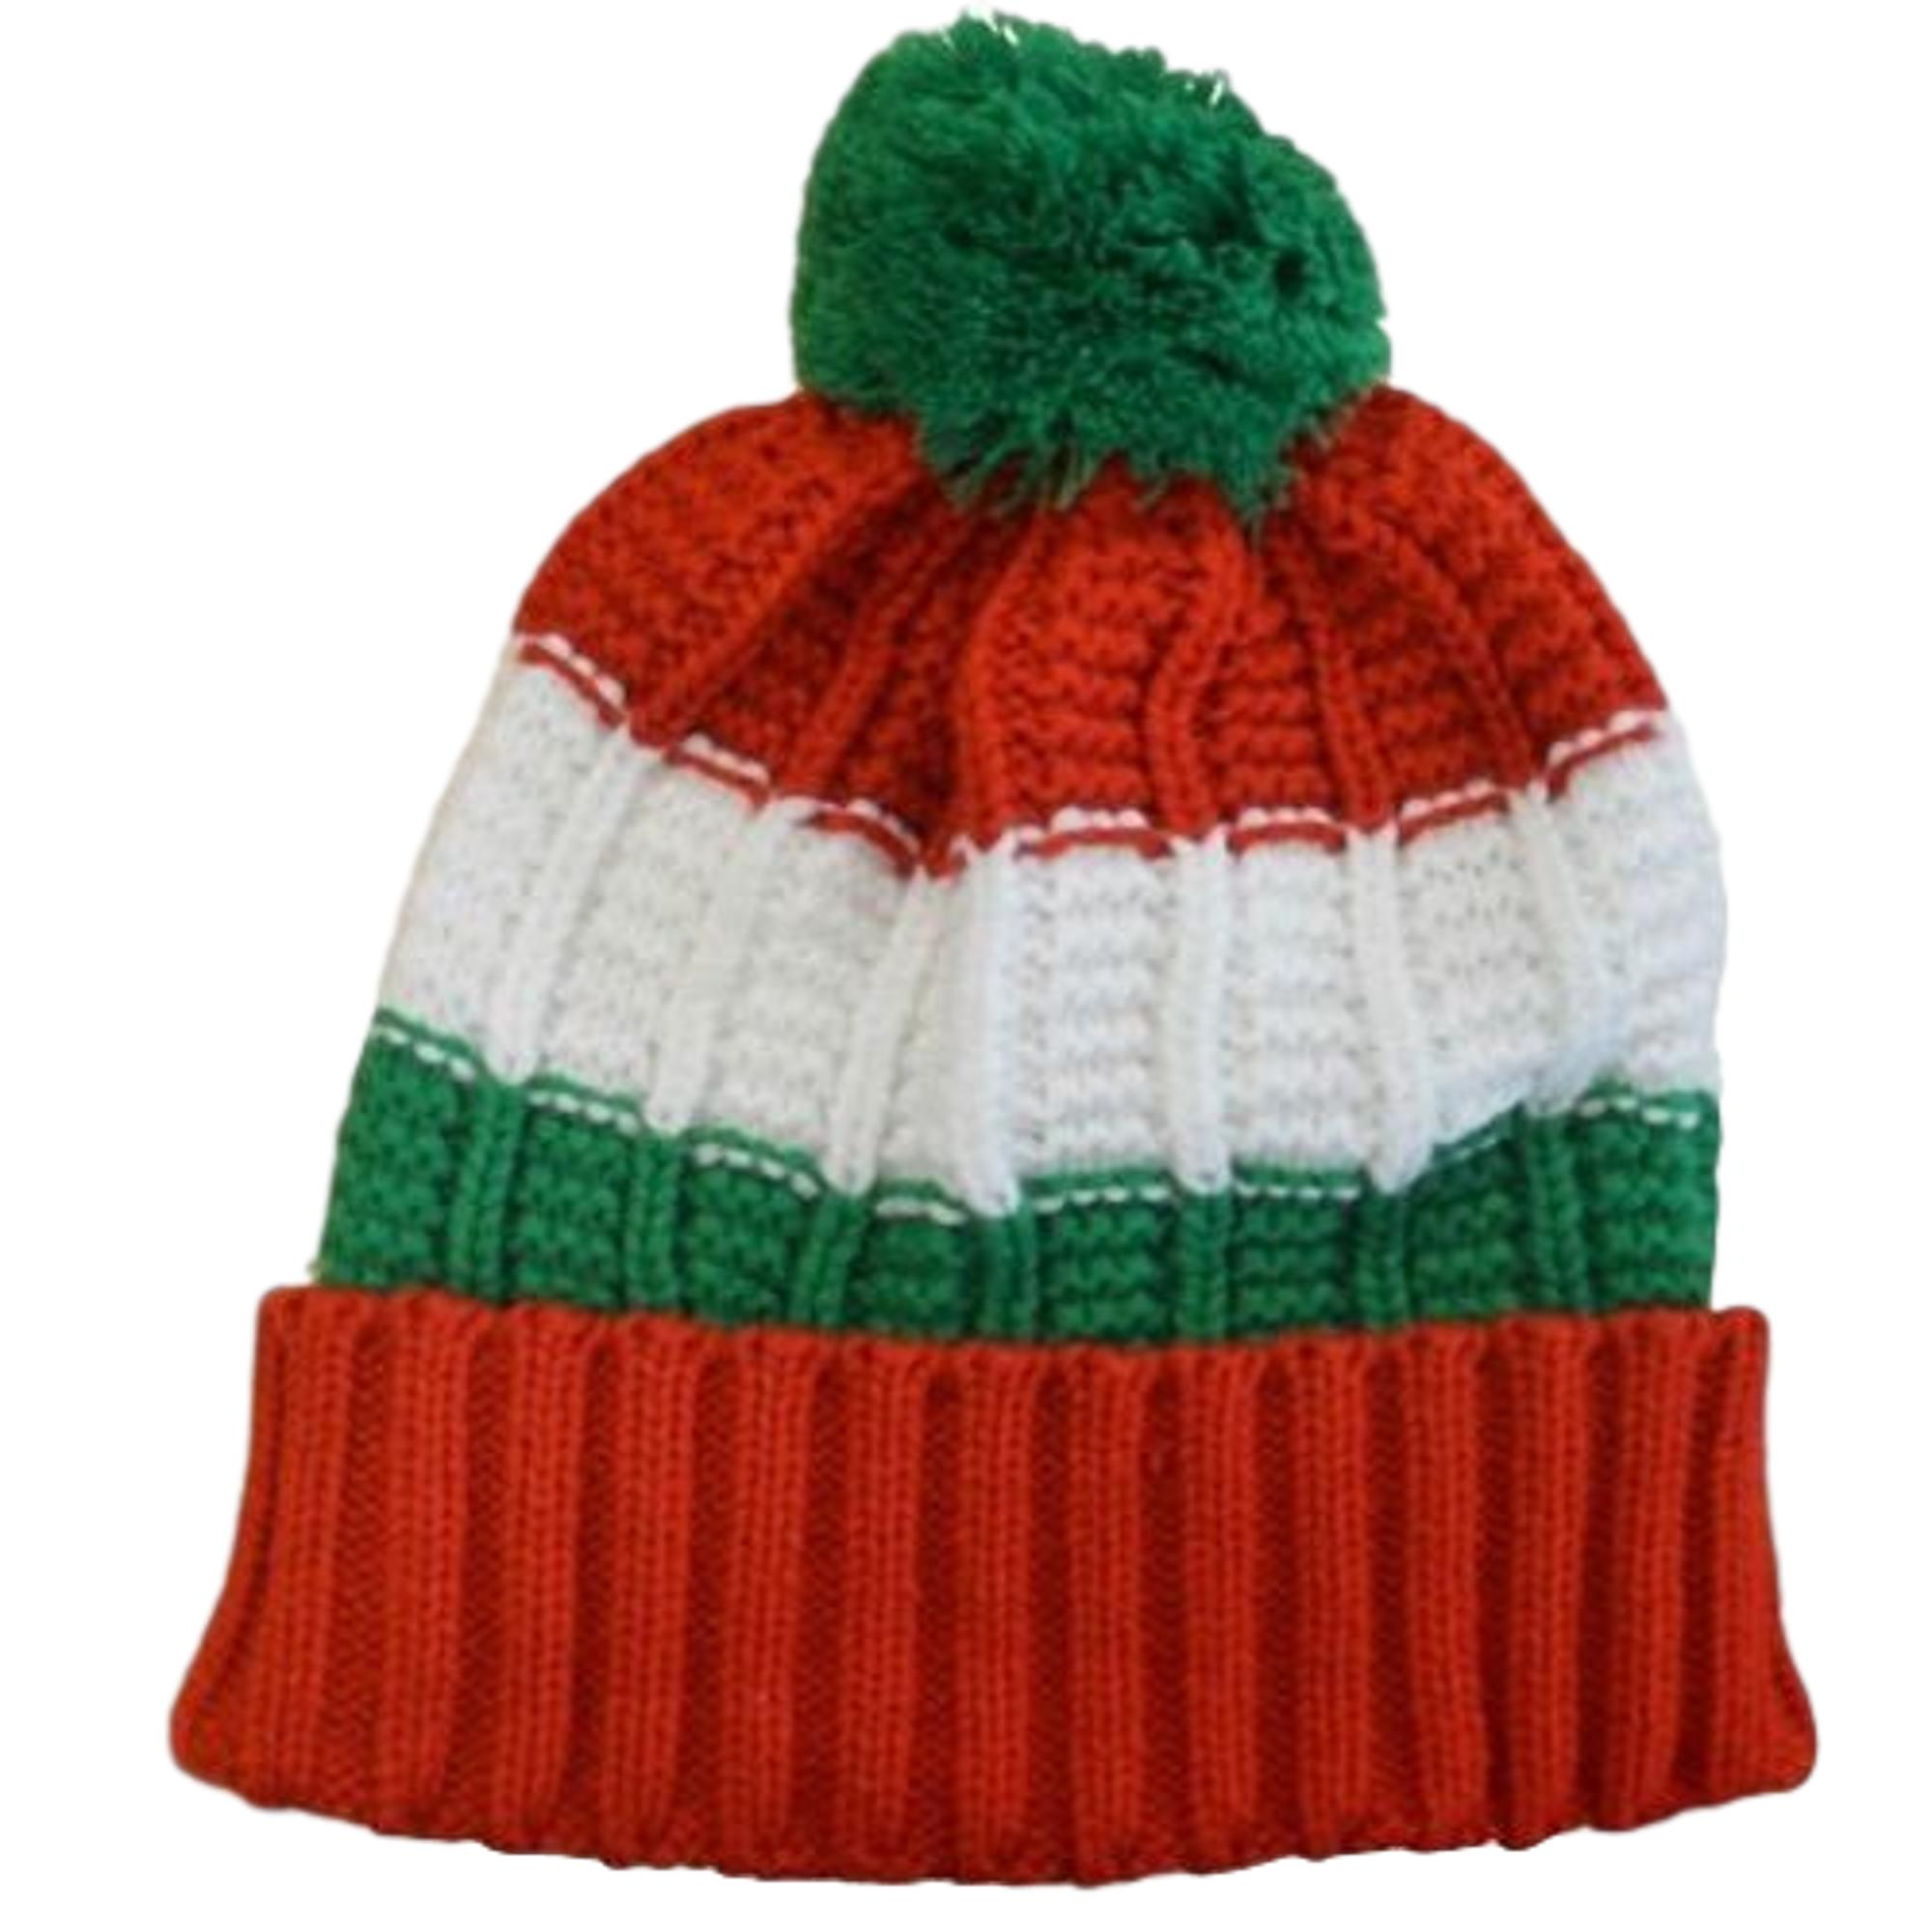 Welsh Knitted Bobble Hat